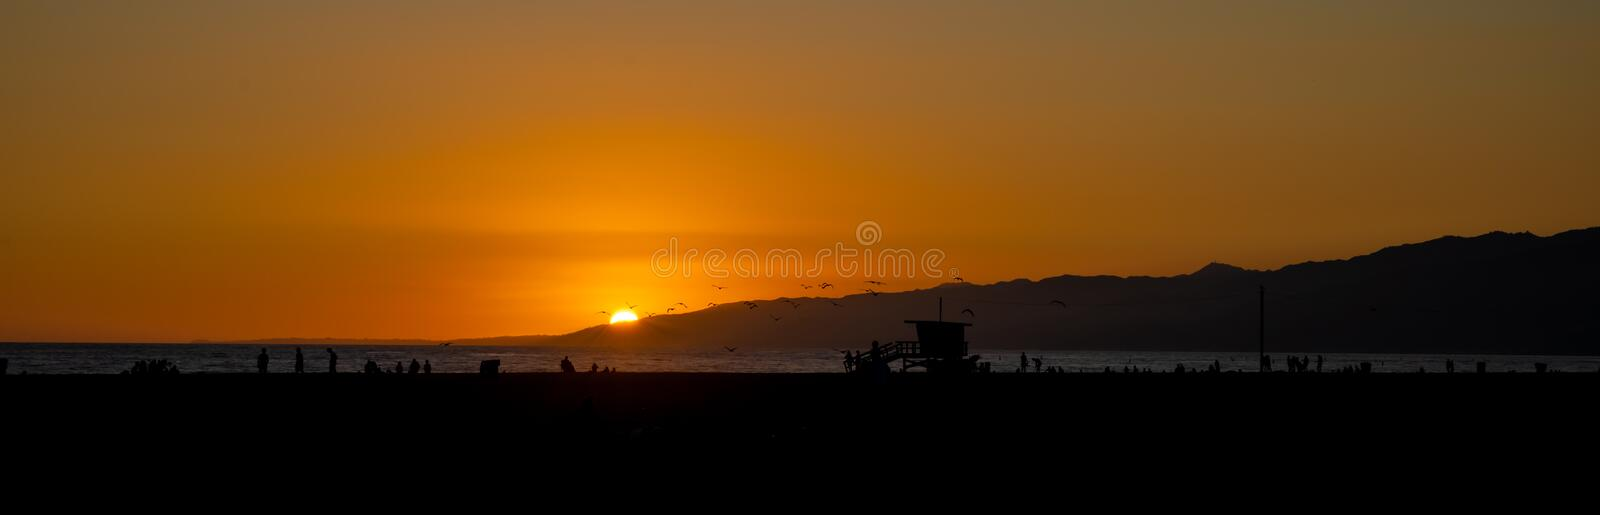 Panoramic view of Santa Monica beach in Los Angeles at sunset stock photo